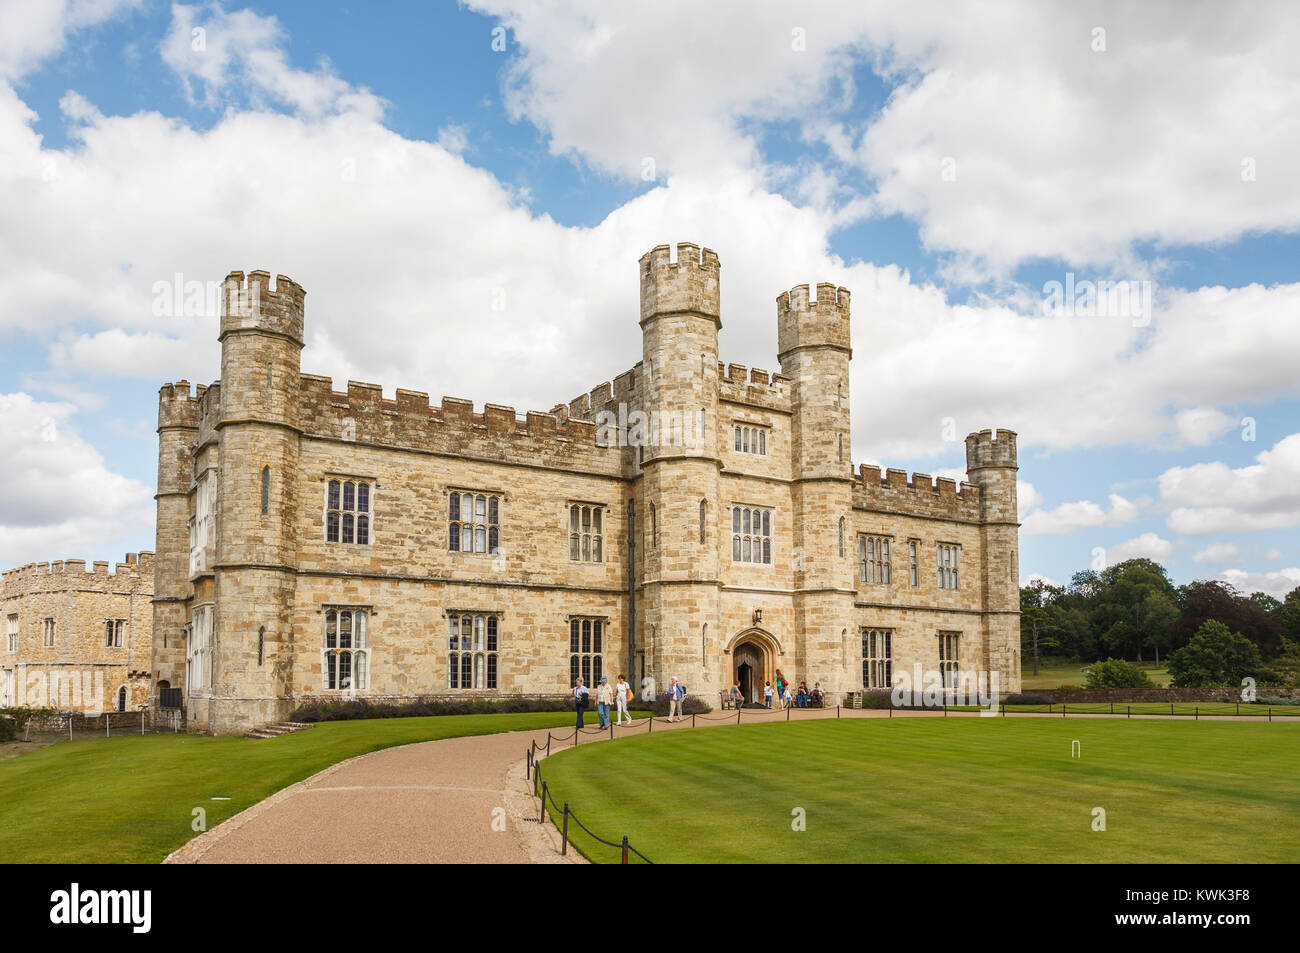 Main entrance facade to Leeds Castle, near Maidstone, Kent, southeast England, UK and croquet lawn with towers and - Stock Image